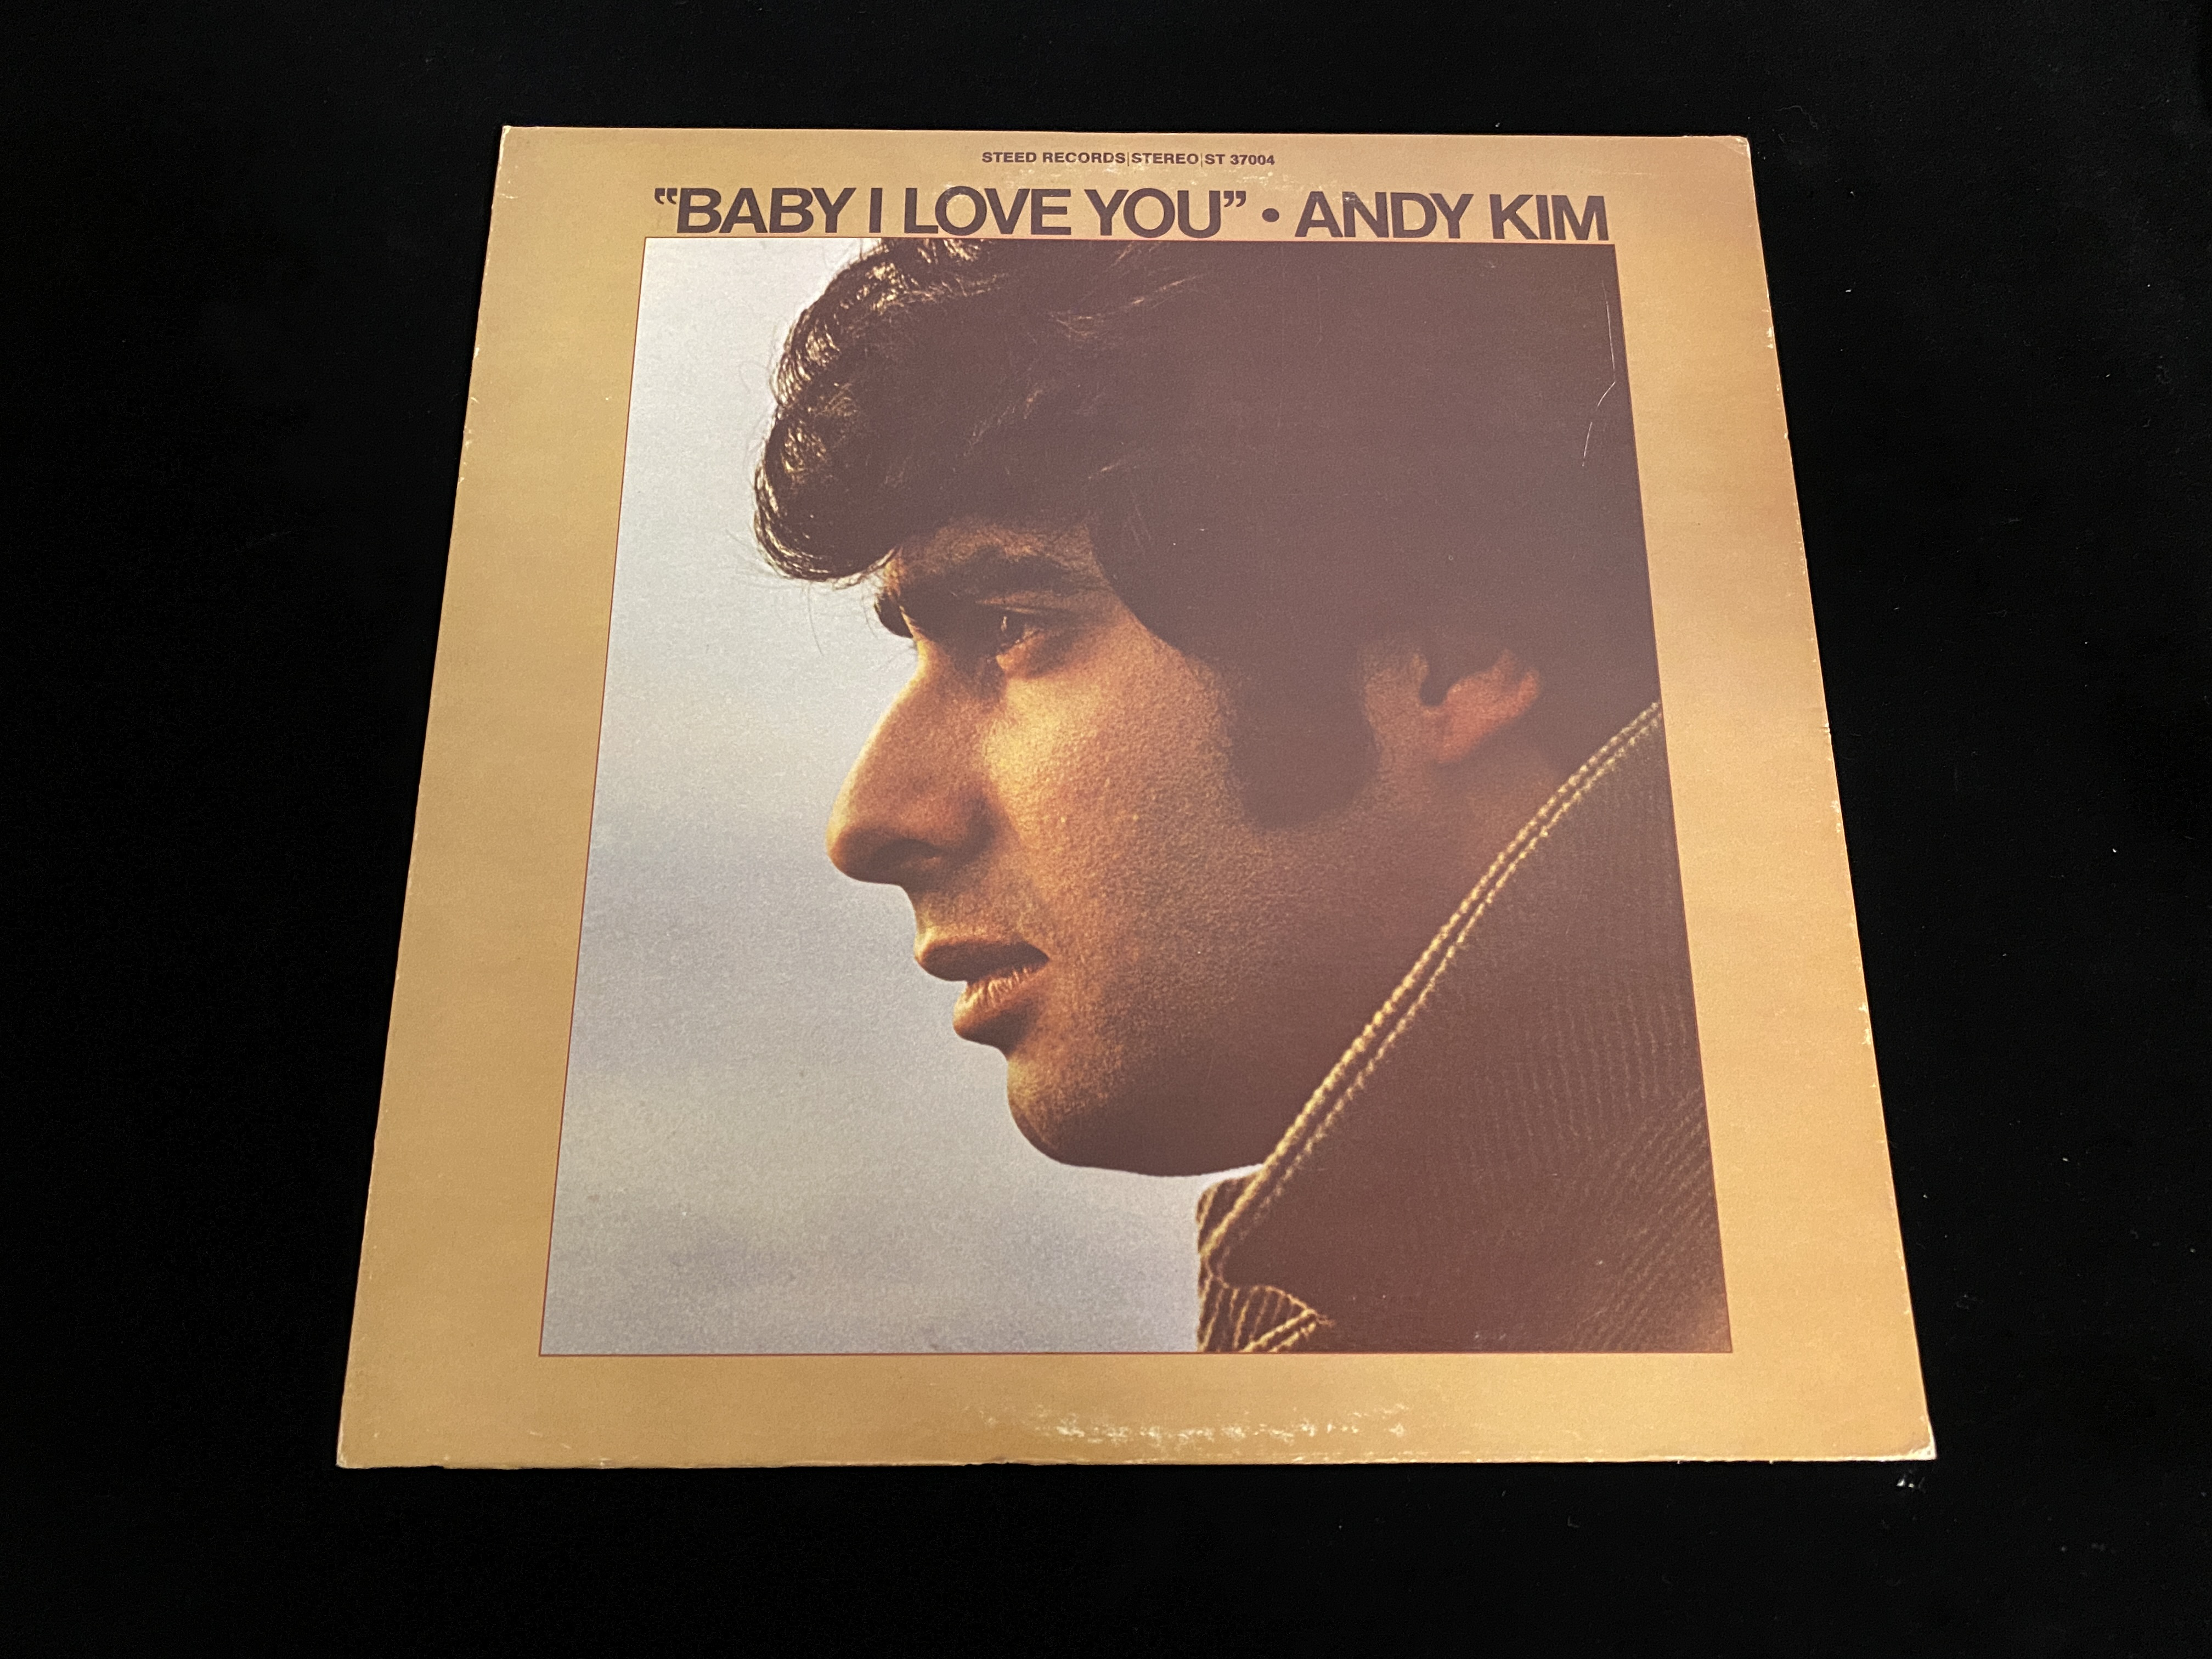 Andy Kim - Baby I Love You (US, 1969)